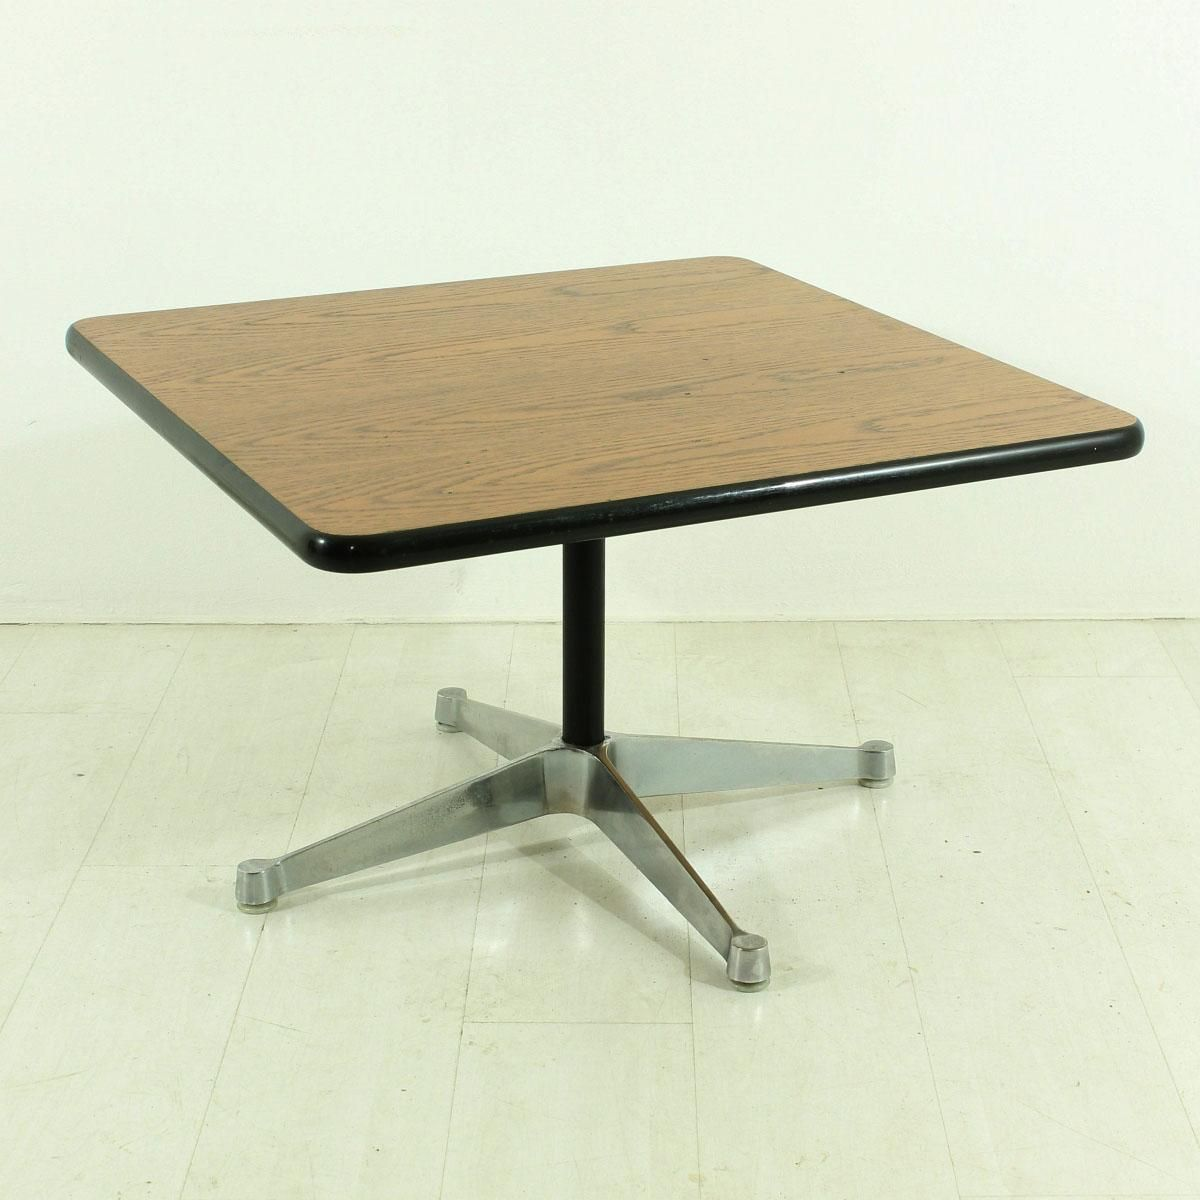 Vintage Four Star Base Coffee Table By Charles Ray Eames For